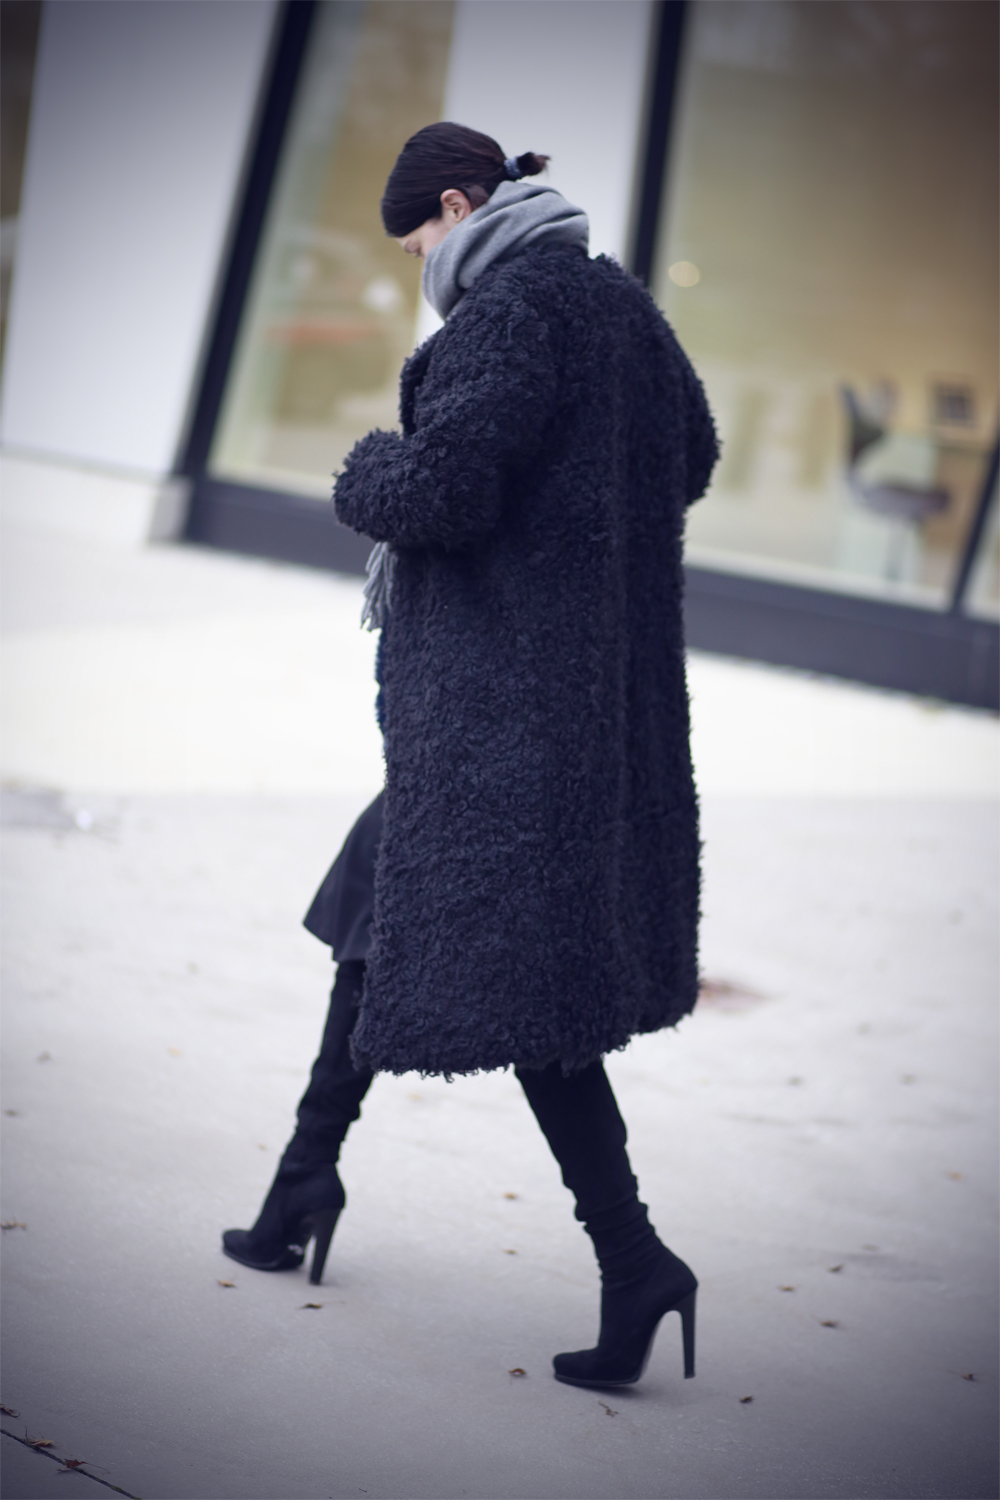 Marianne Theodorsen is wearing a long black fluffy coat from Line of Oslo